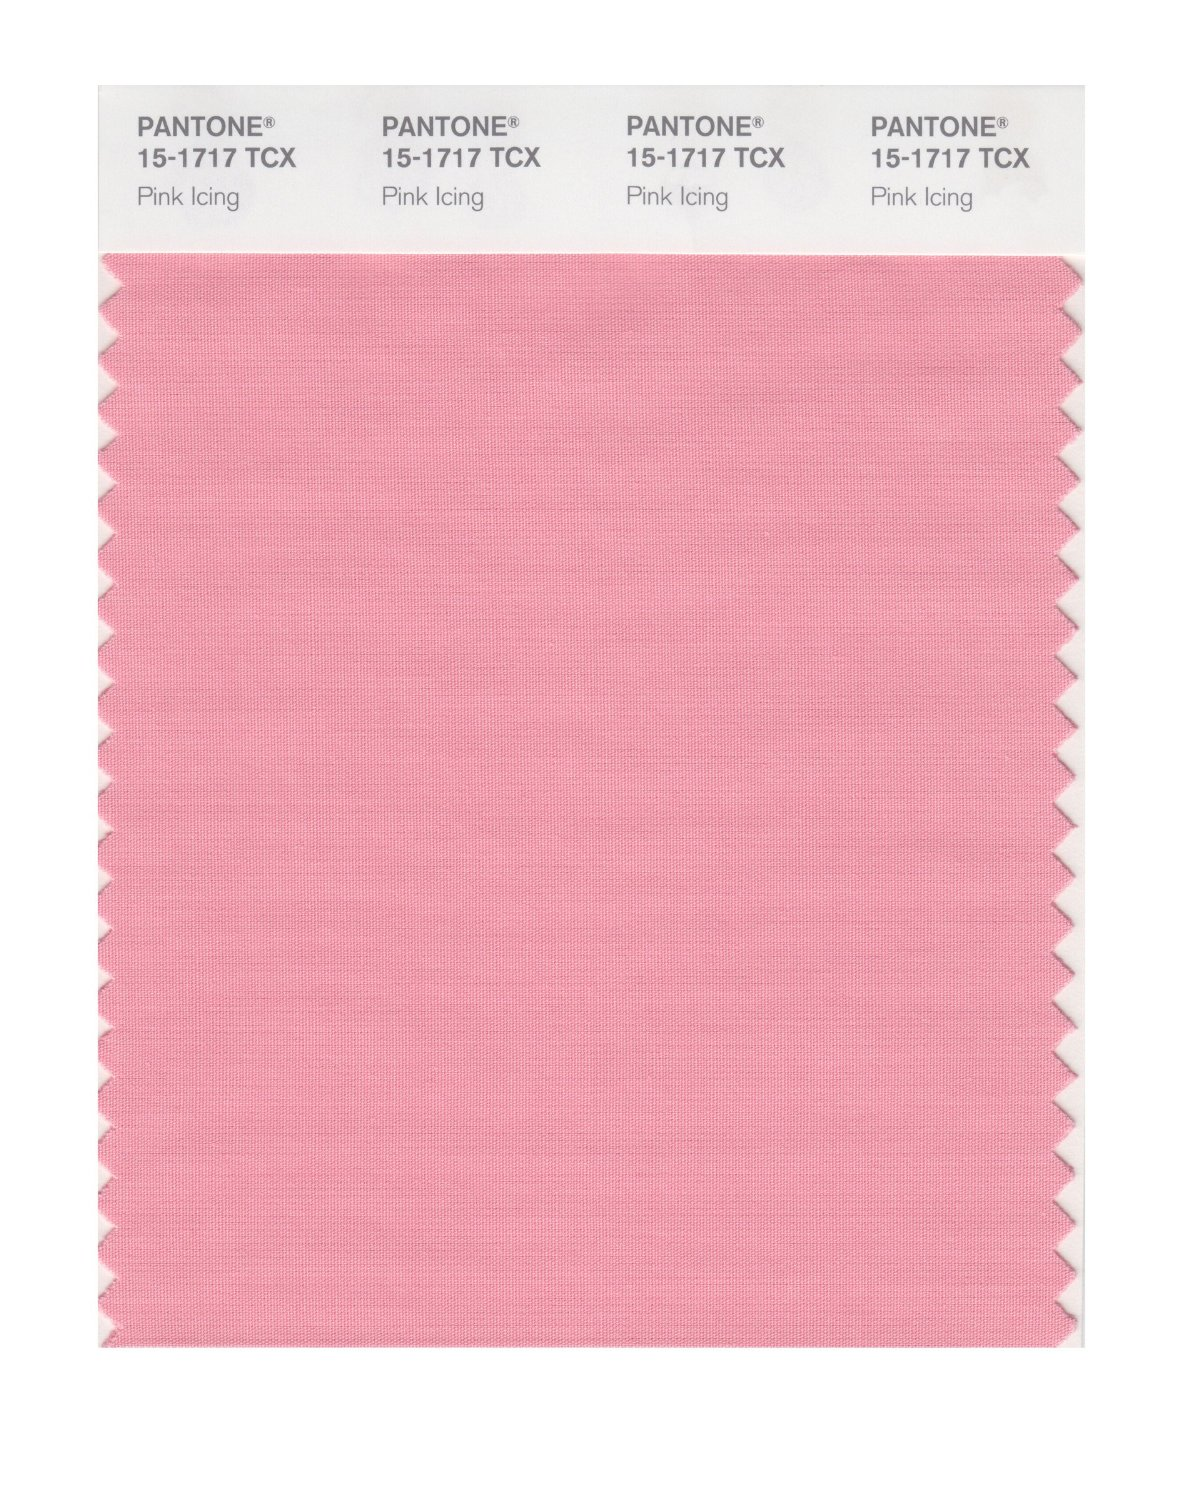 Pantone Smart Swatch 15-1717 Pink Icing